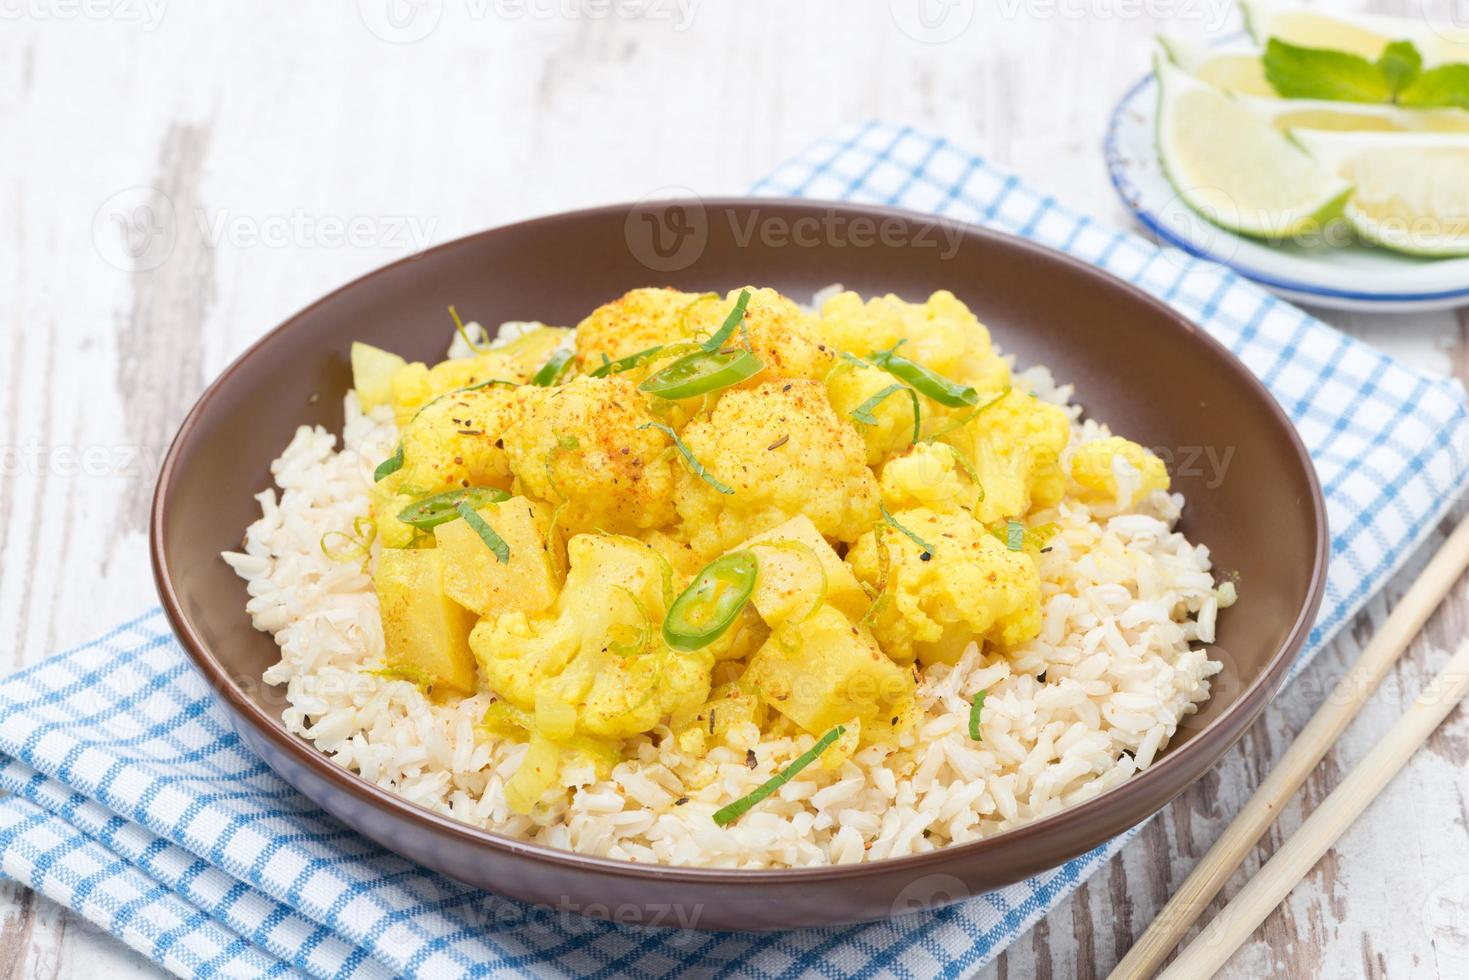 Thai food - vegetable curry with cauliflower and rice photo